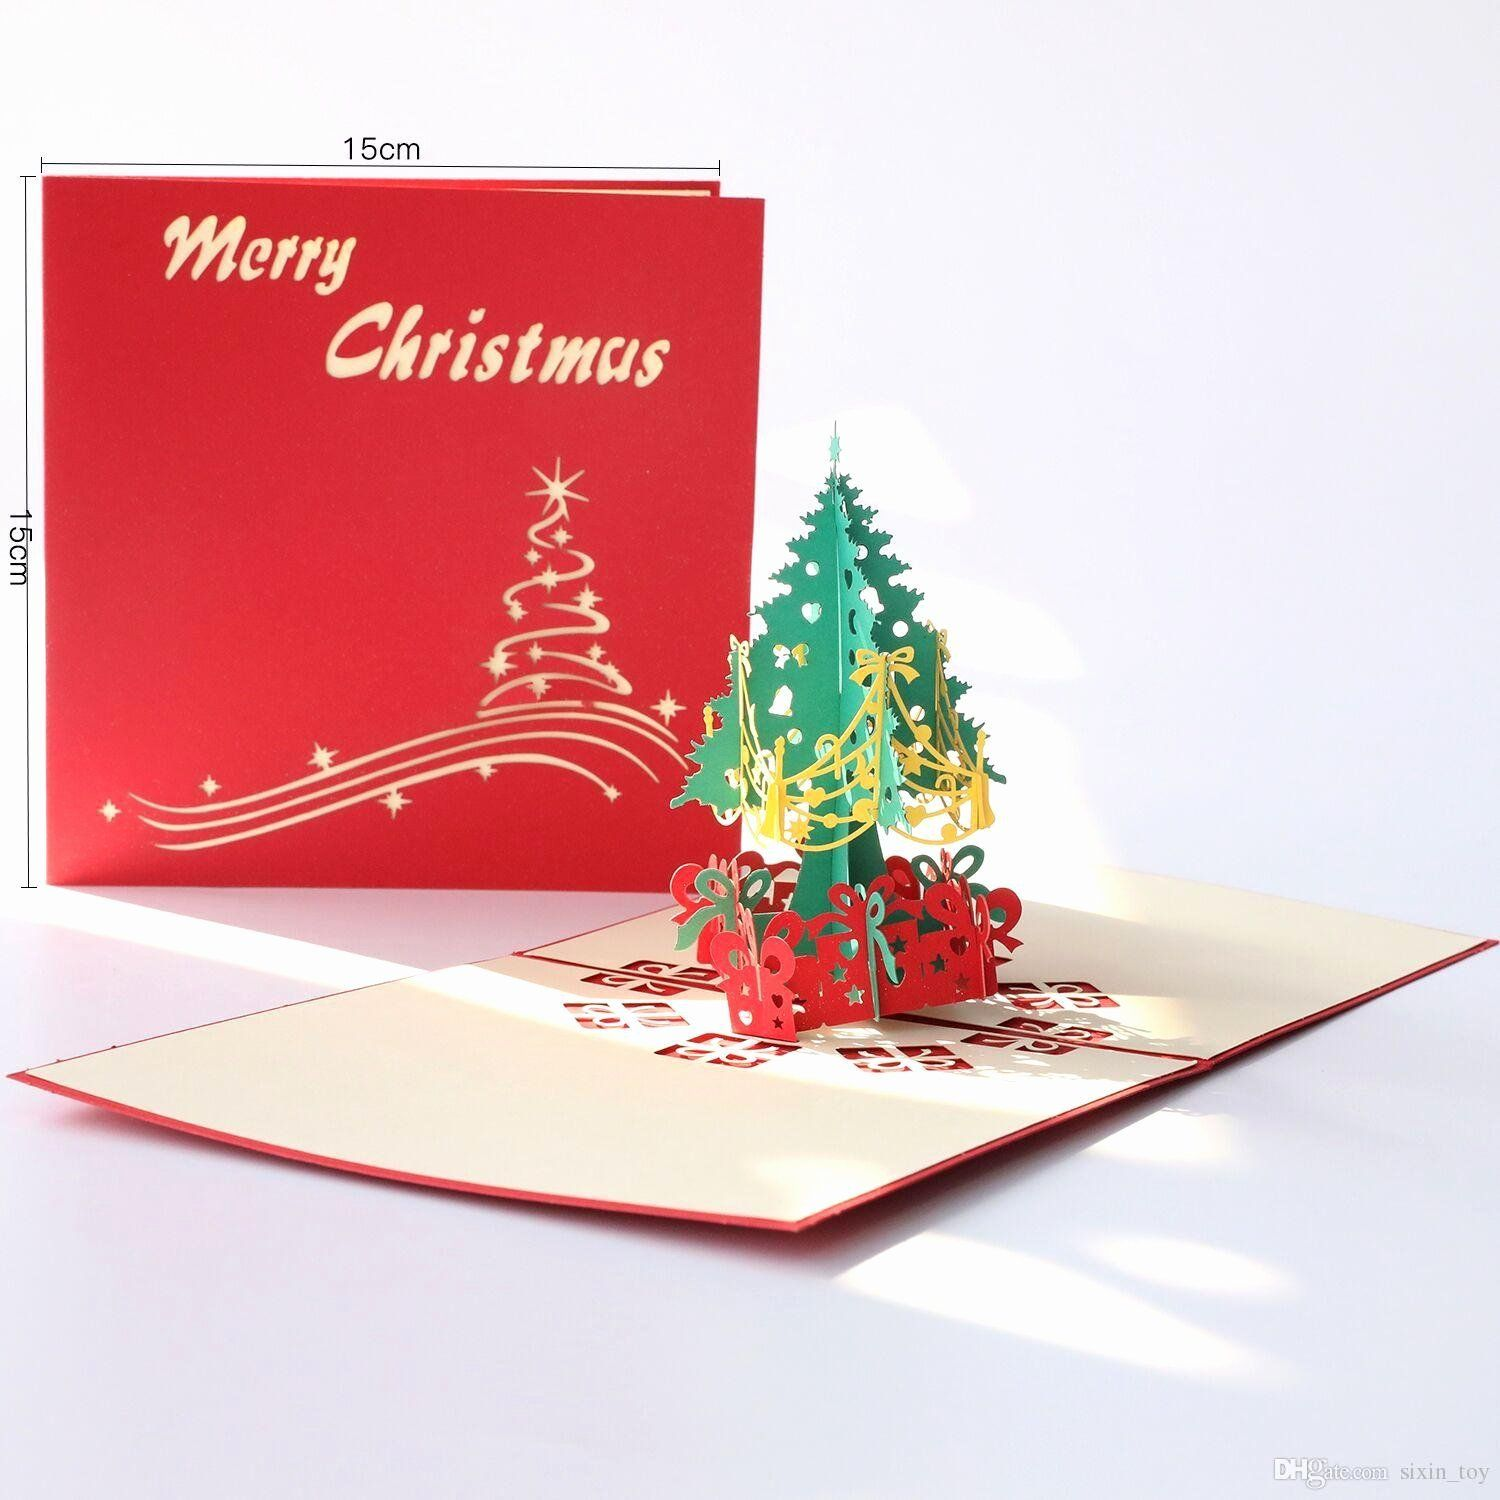 Romantic Greetings Cards in 2020 Christmas tree cards